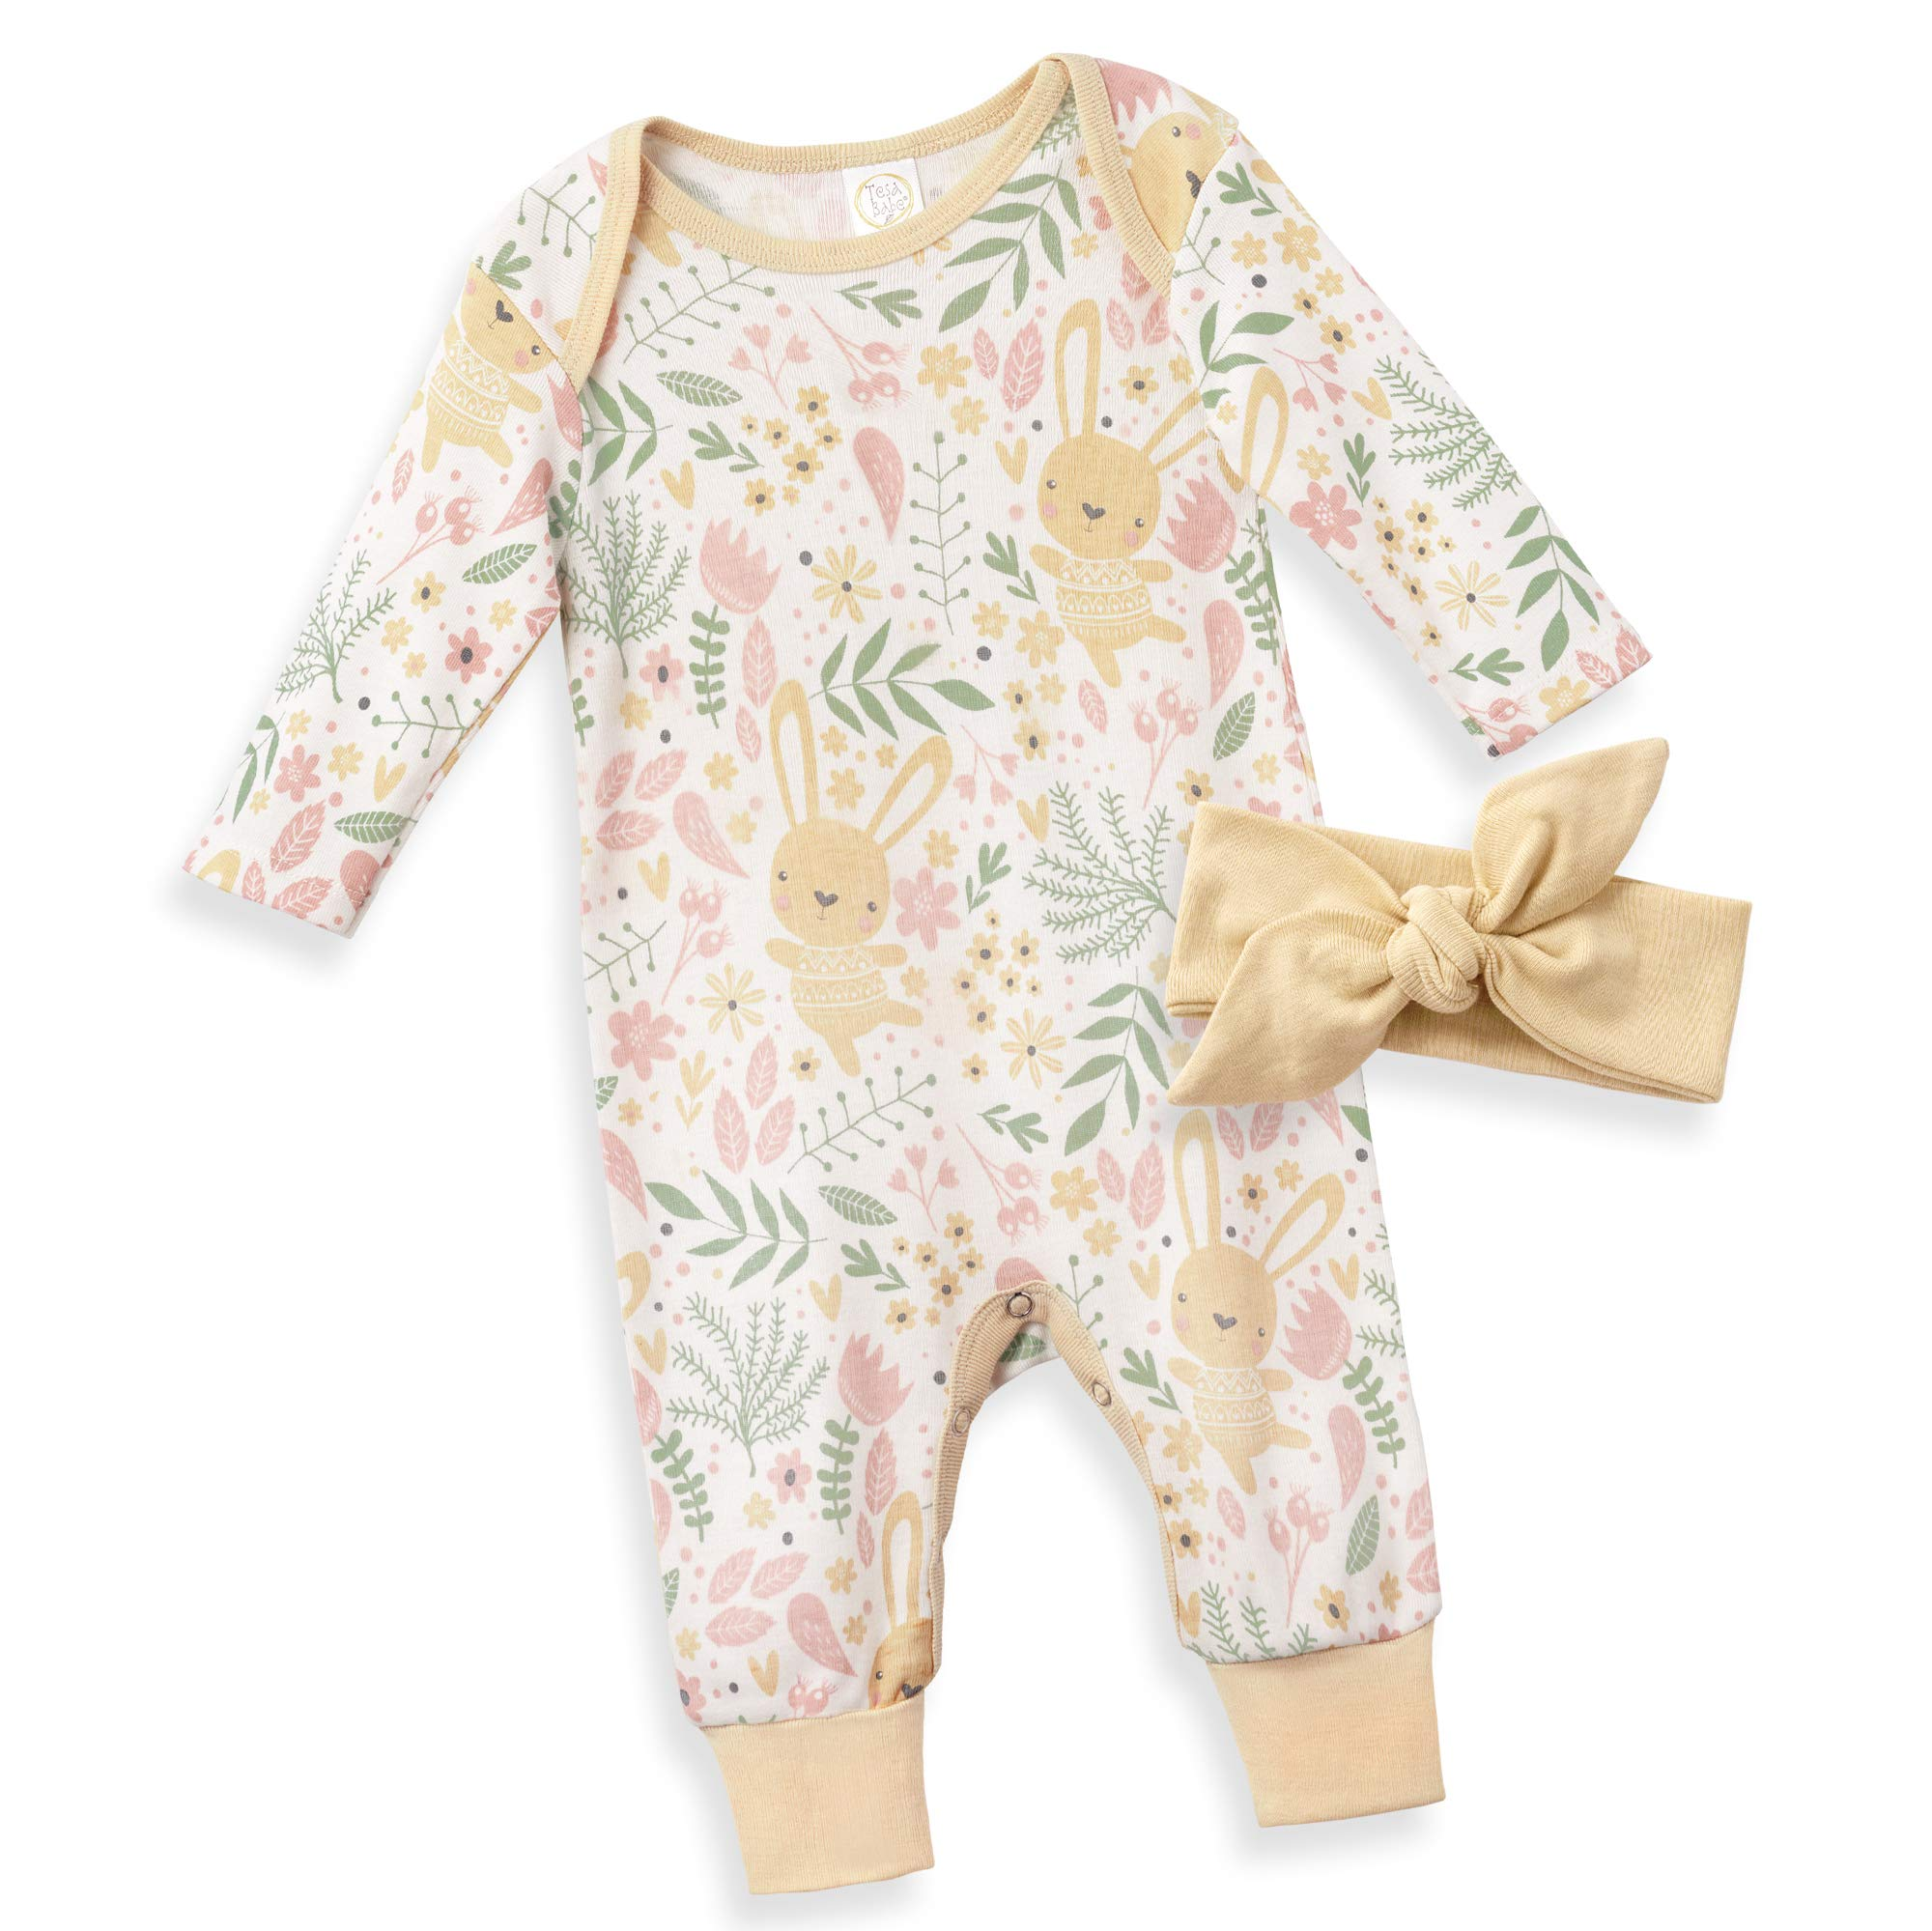 Tesa Babe Baby Girl Easter Outfit Gift for Newborn Infant to Toddler in Bunny Print, Multi